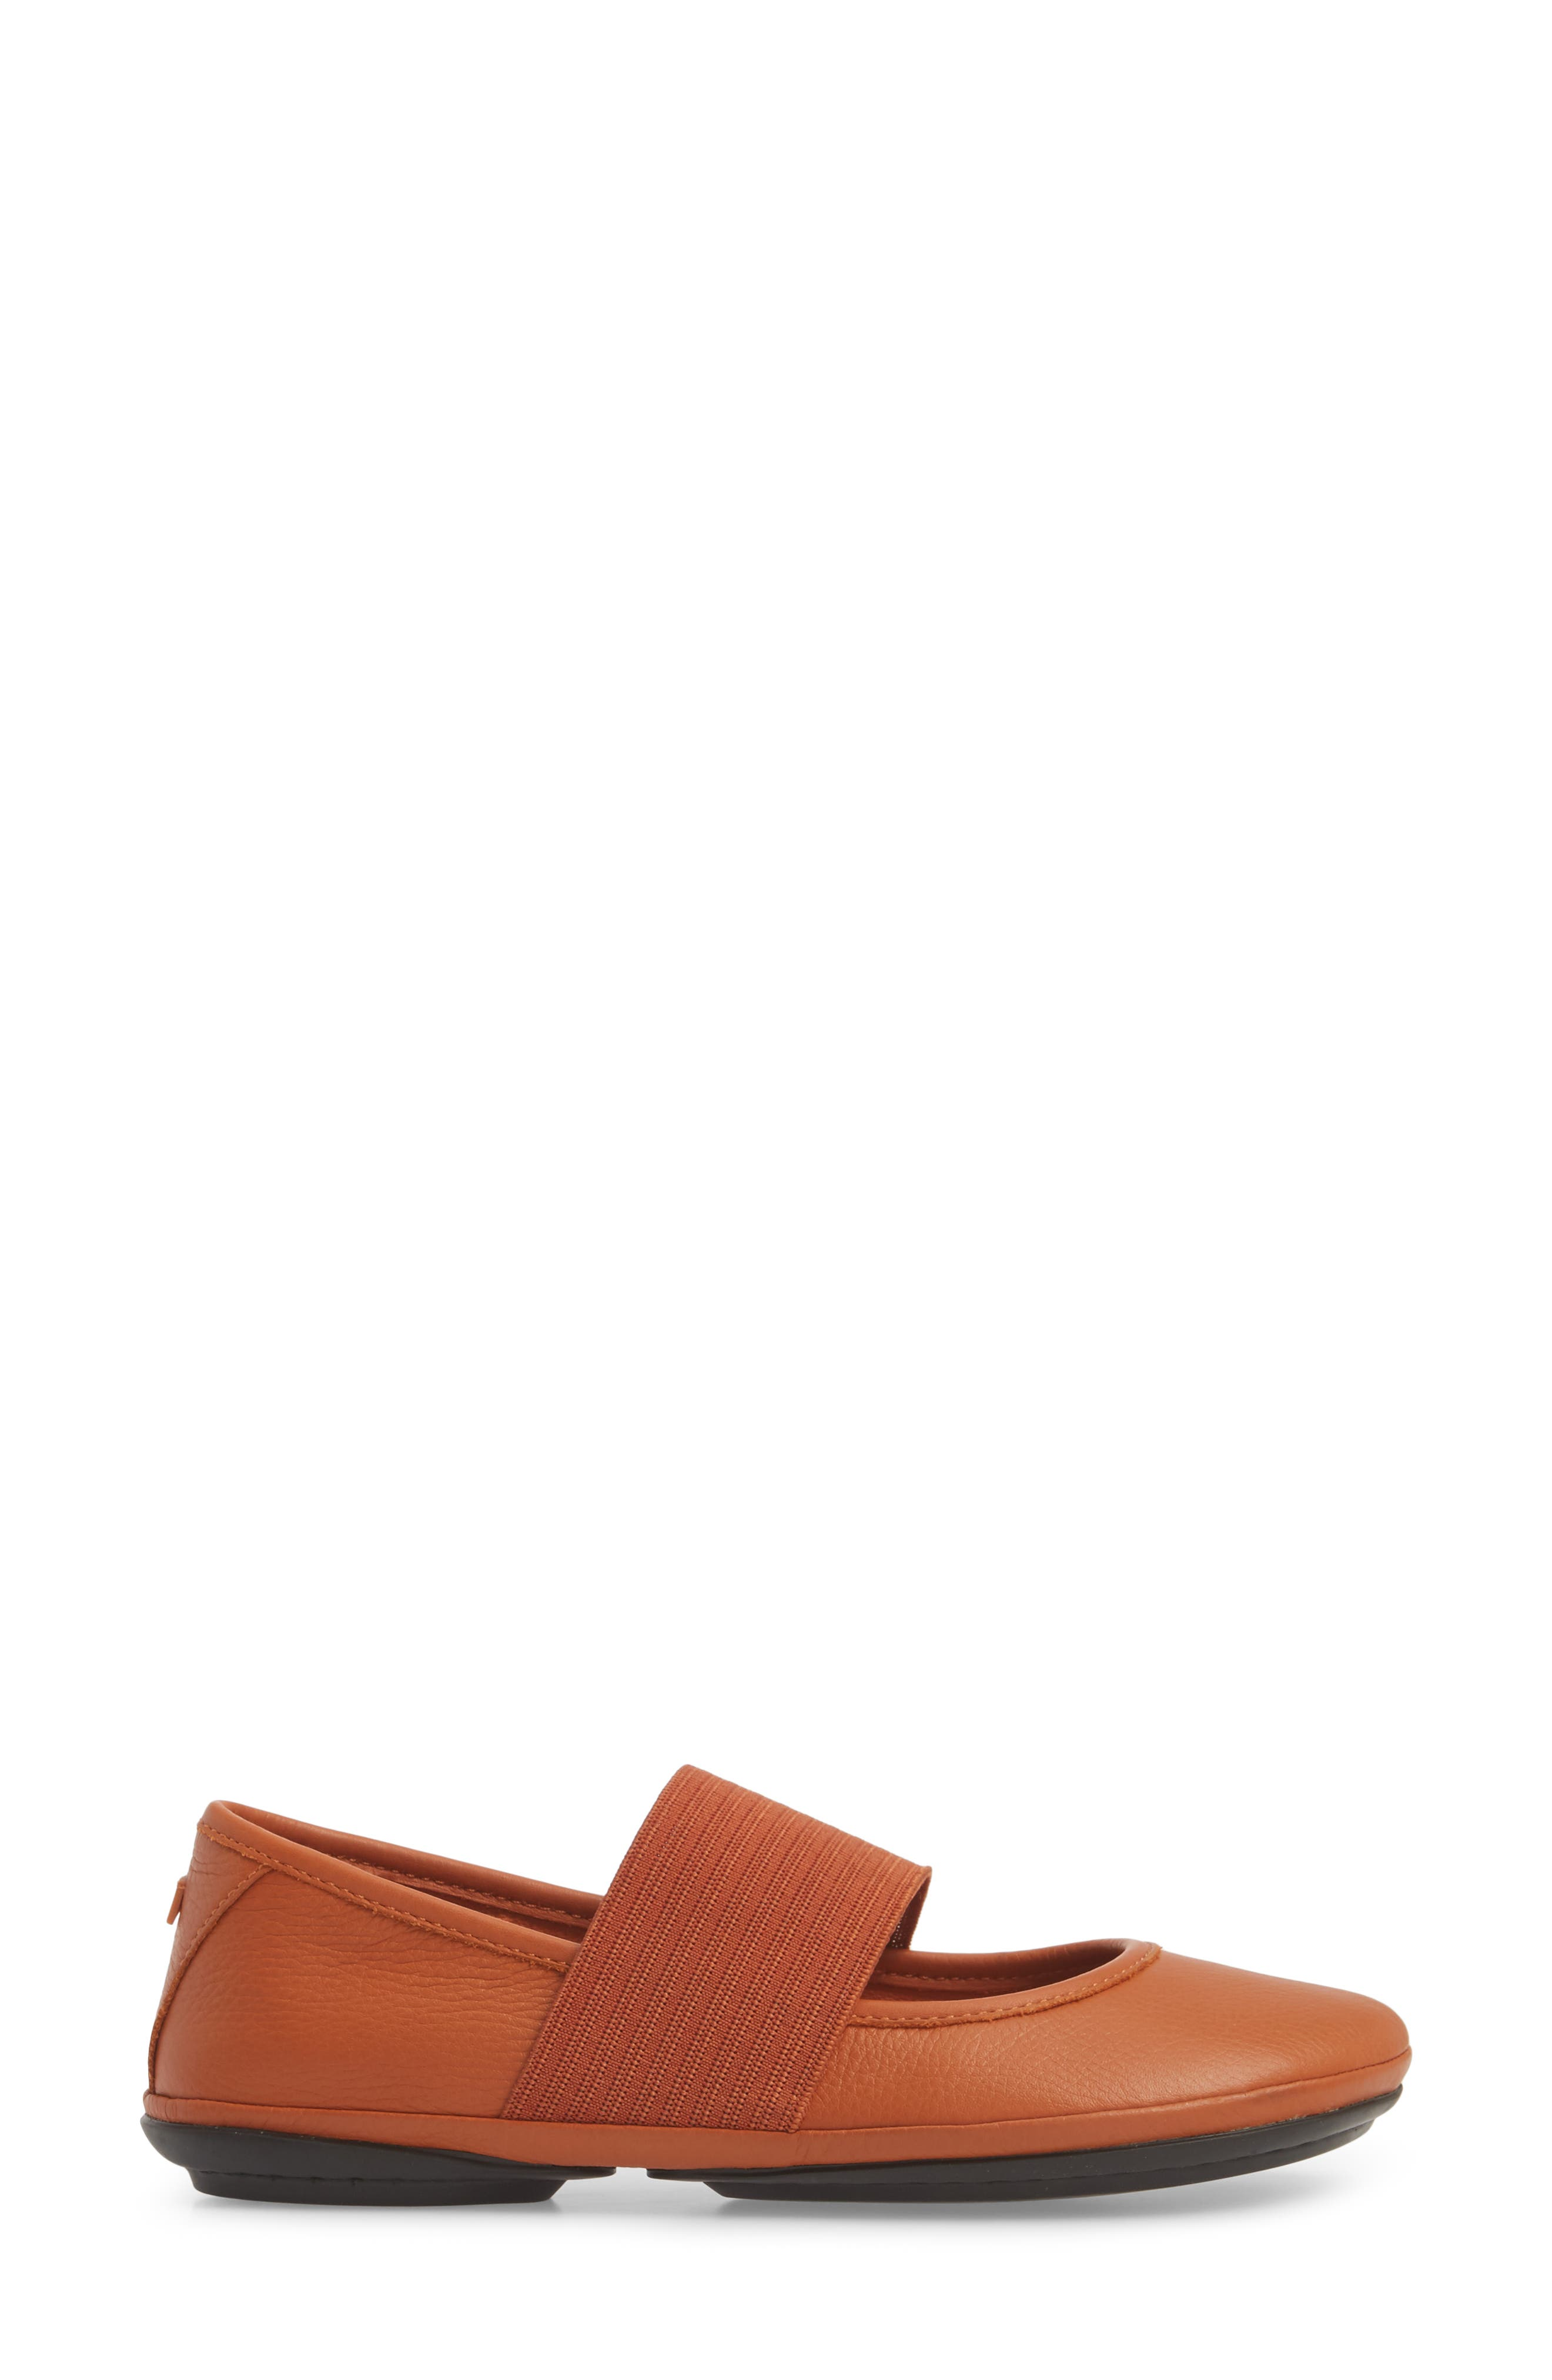 Right Nina Ballet Flat,                             Alternate thumbnail 5, color,                             Rust/Copper Leather